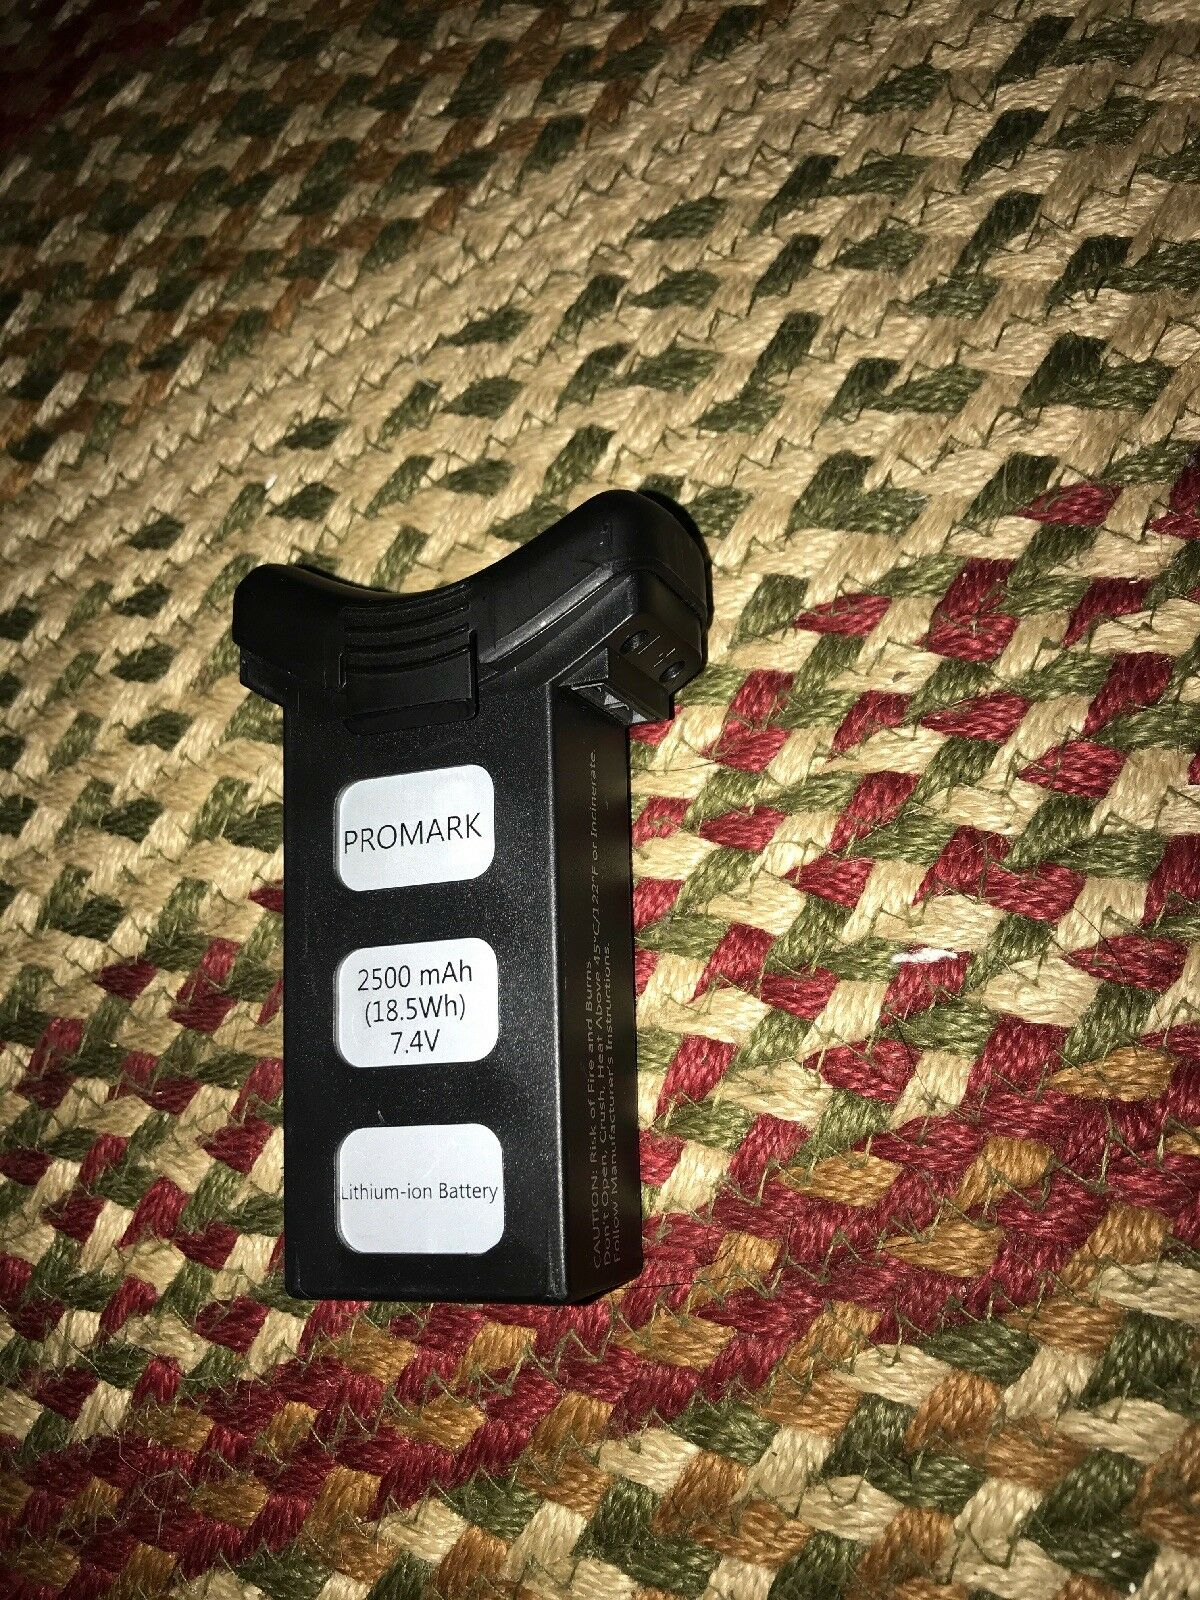 Promark GPS Shadow Drone Battery OEM DS 8540852S 2500mAh 74V replacement P70